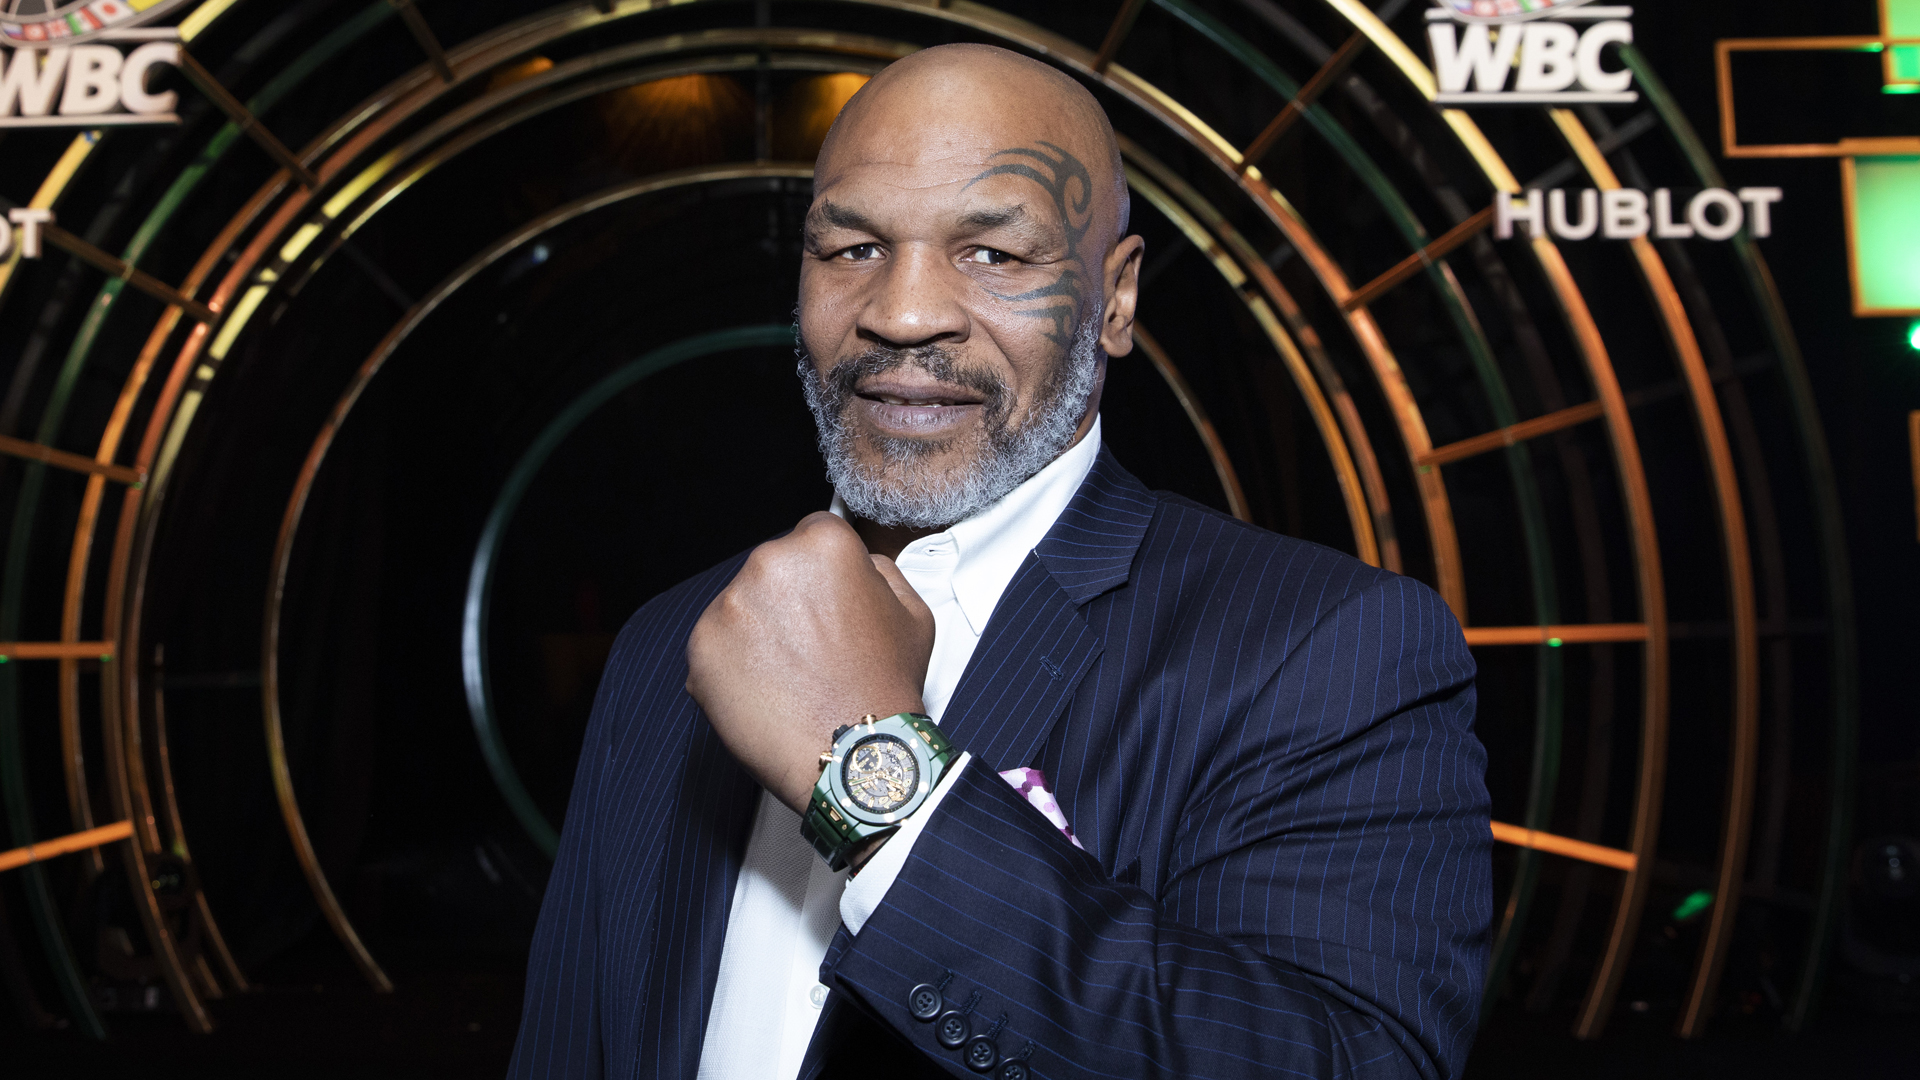 "In this handout image provided by Hublot Mike Tyson attends the Hublot x WBC ""Night of Champions"" Gala at the Encore Hotel on May 03, 2019 in Las Vegas, Nevada. (Omar Vega/HUBLOT via Getty Images)"